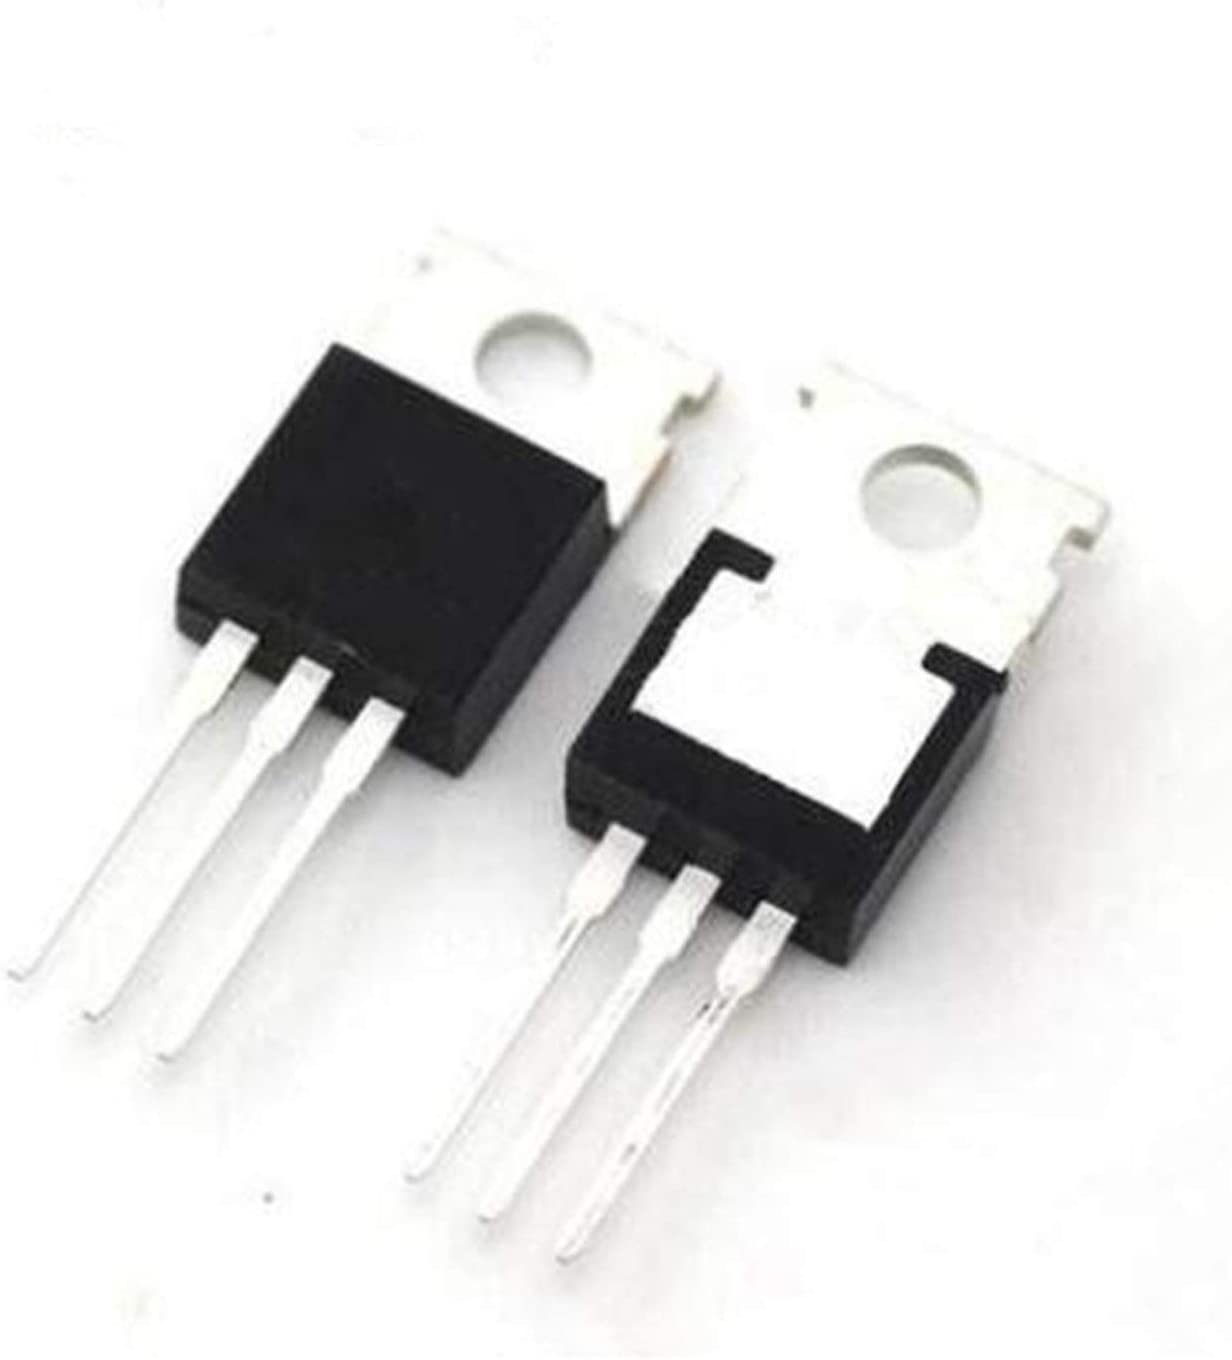 BAIJIAXIUSHANG-TIES Electrical Triode Transistor T 100PCS A surprise price is realized Large-scale sale BD240C